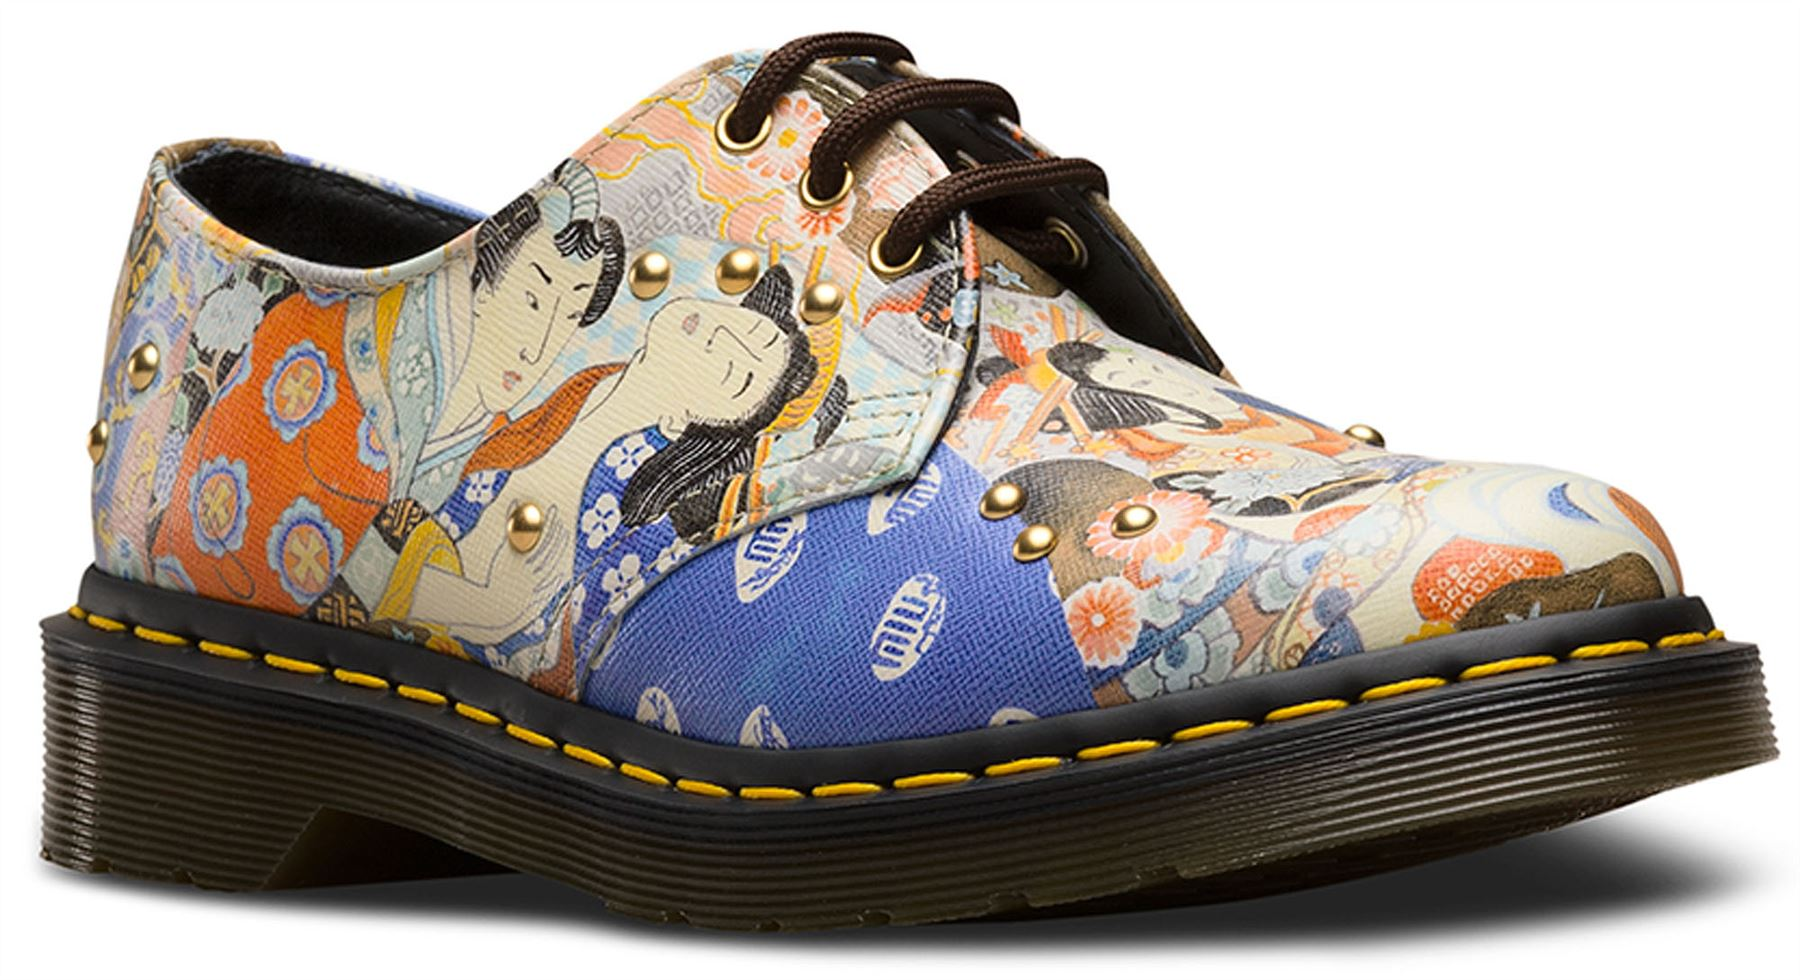 Dr-Martens-Ladies-1461-EA-Oriental-Eastern-Art-Multi-Coloured-Leather-Shoes